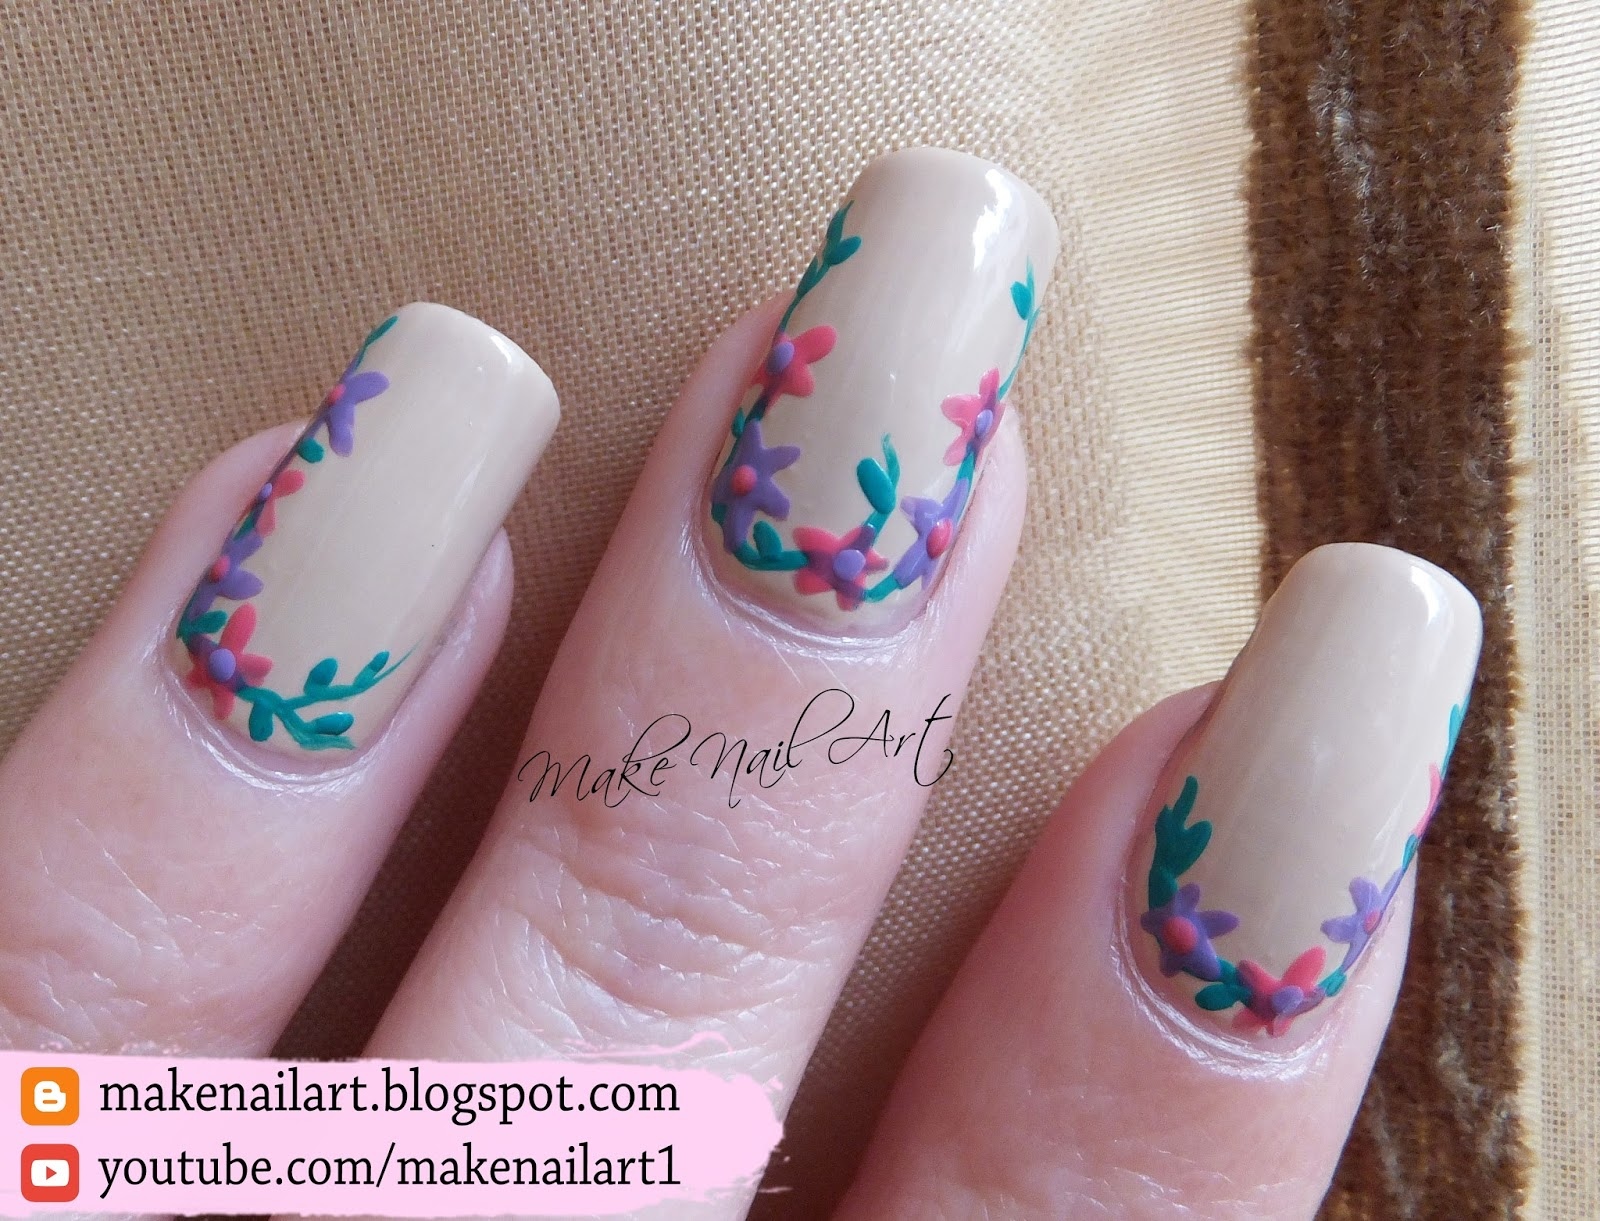 Make Nail Art Spring Flowers Nail Art Design Tutorial